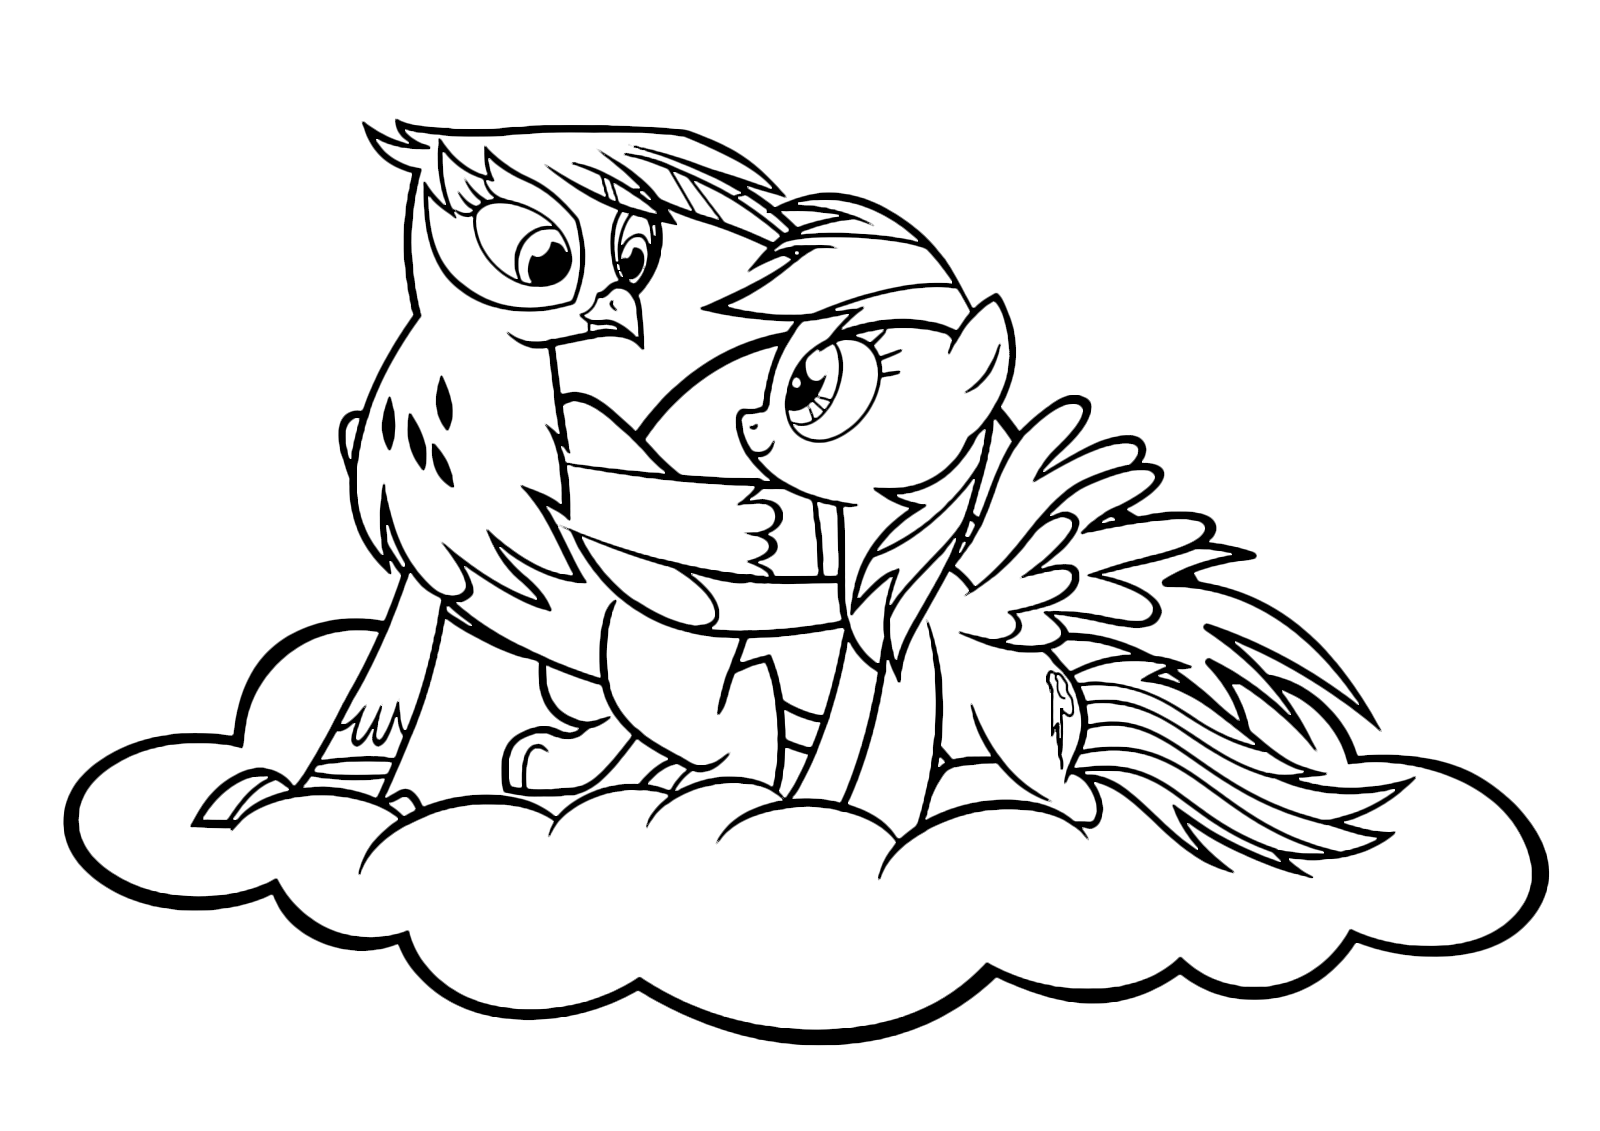 My Little Pony - Rainbow Dash and the griffon Gilda on a cloud